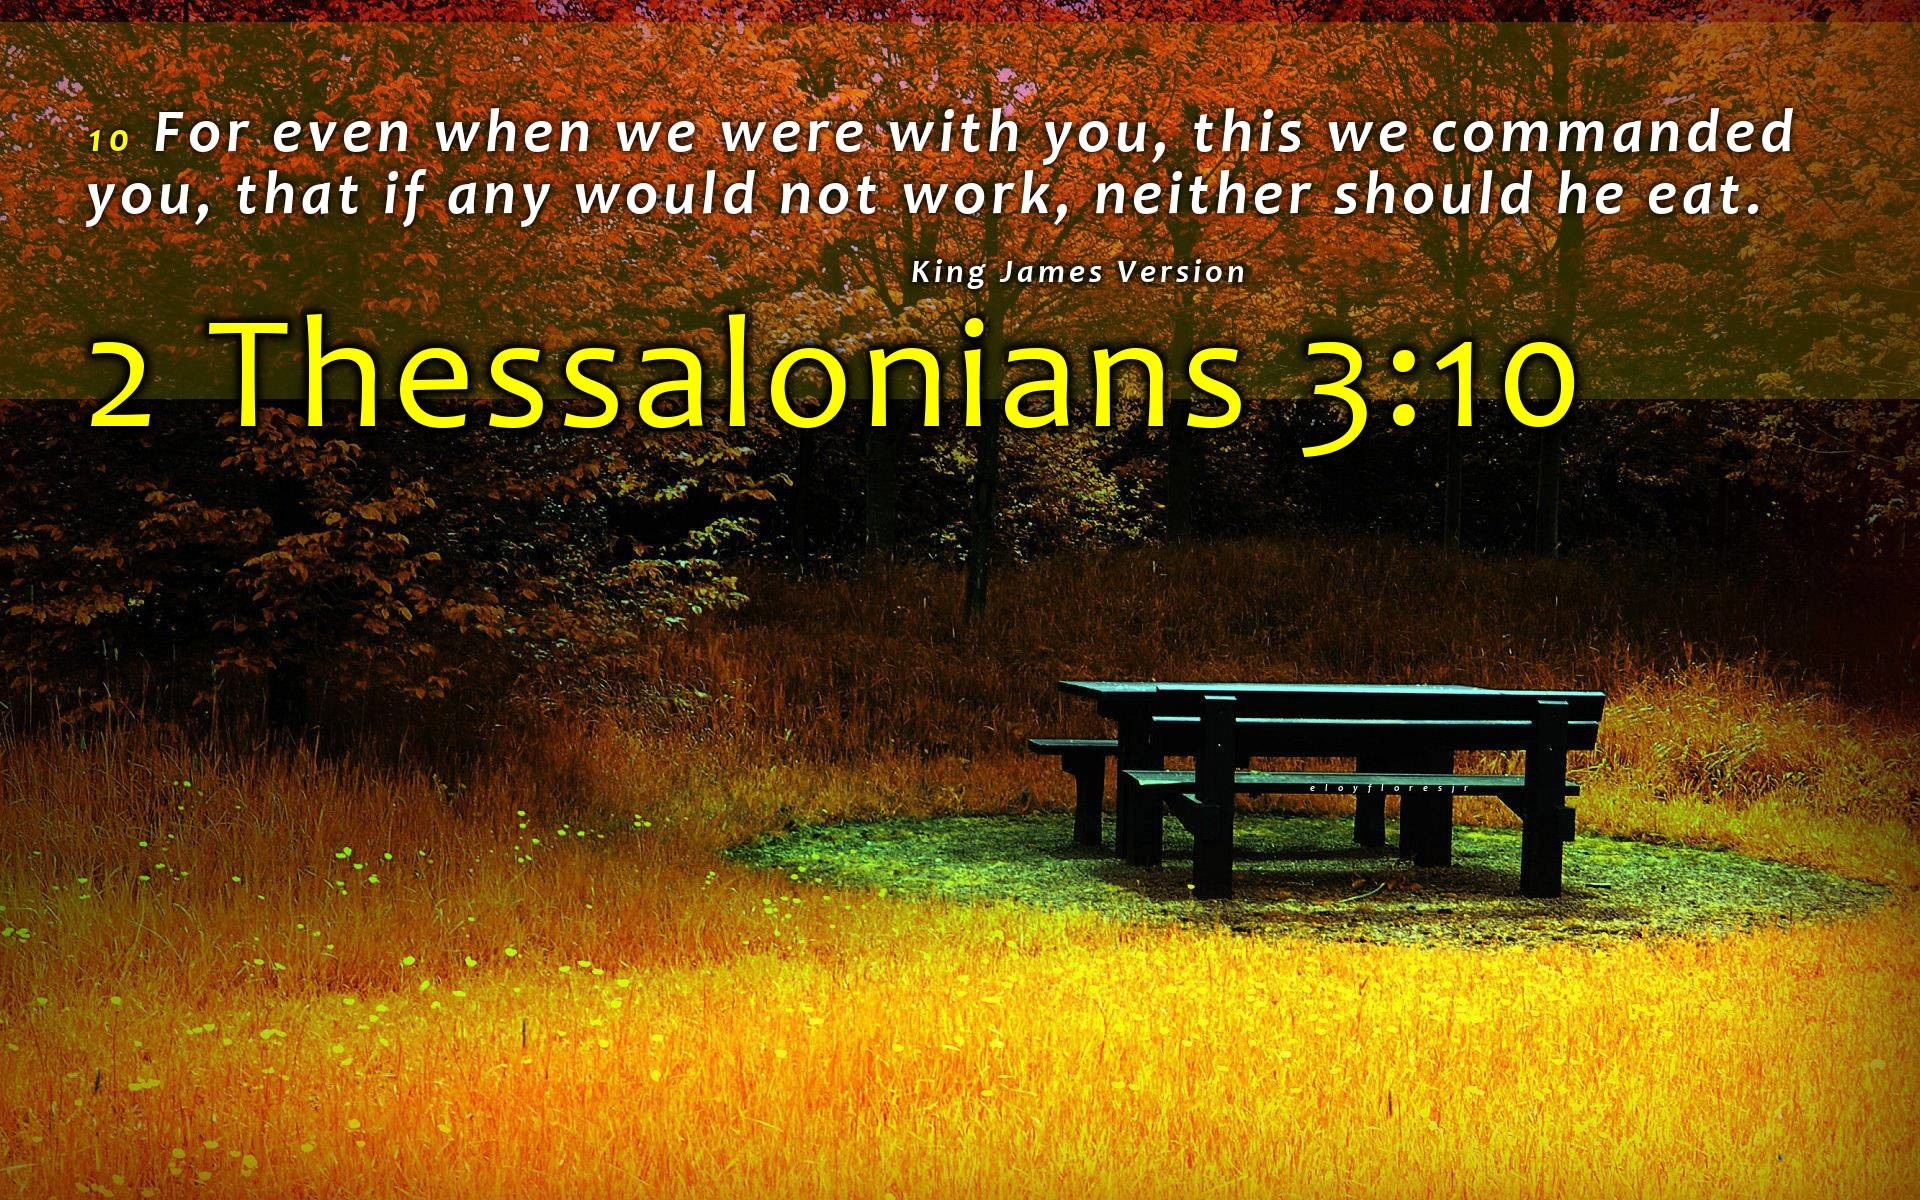 Bible verse pictures wallpaper 58 images - Full hd bible wallpapers ...